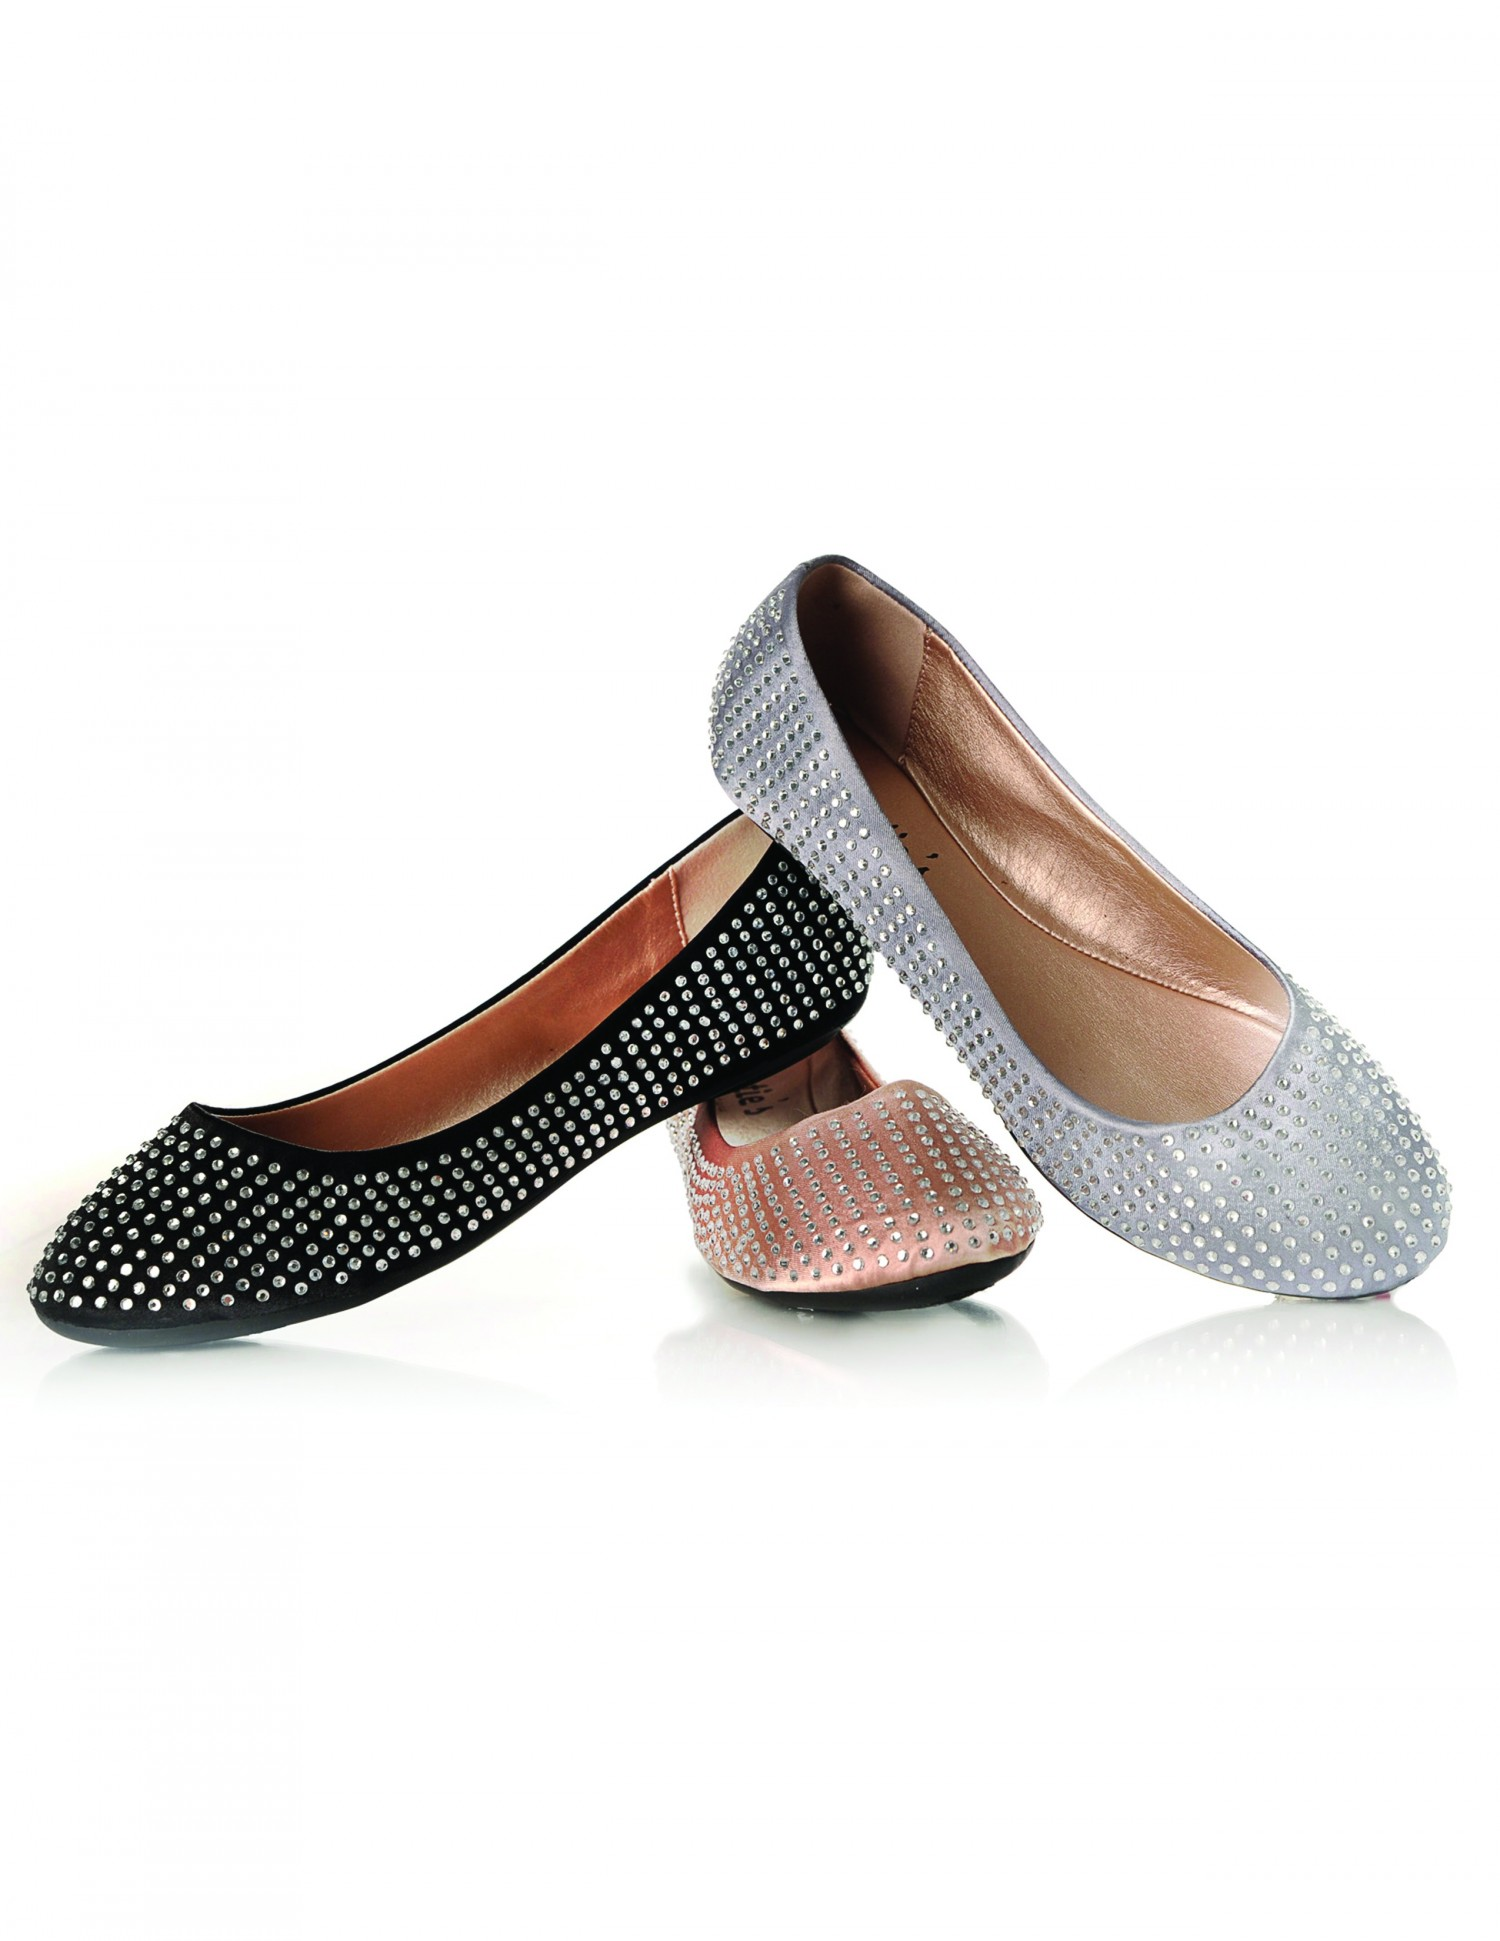 Sweetie's Sally Studded Ballet Flats